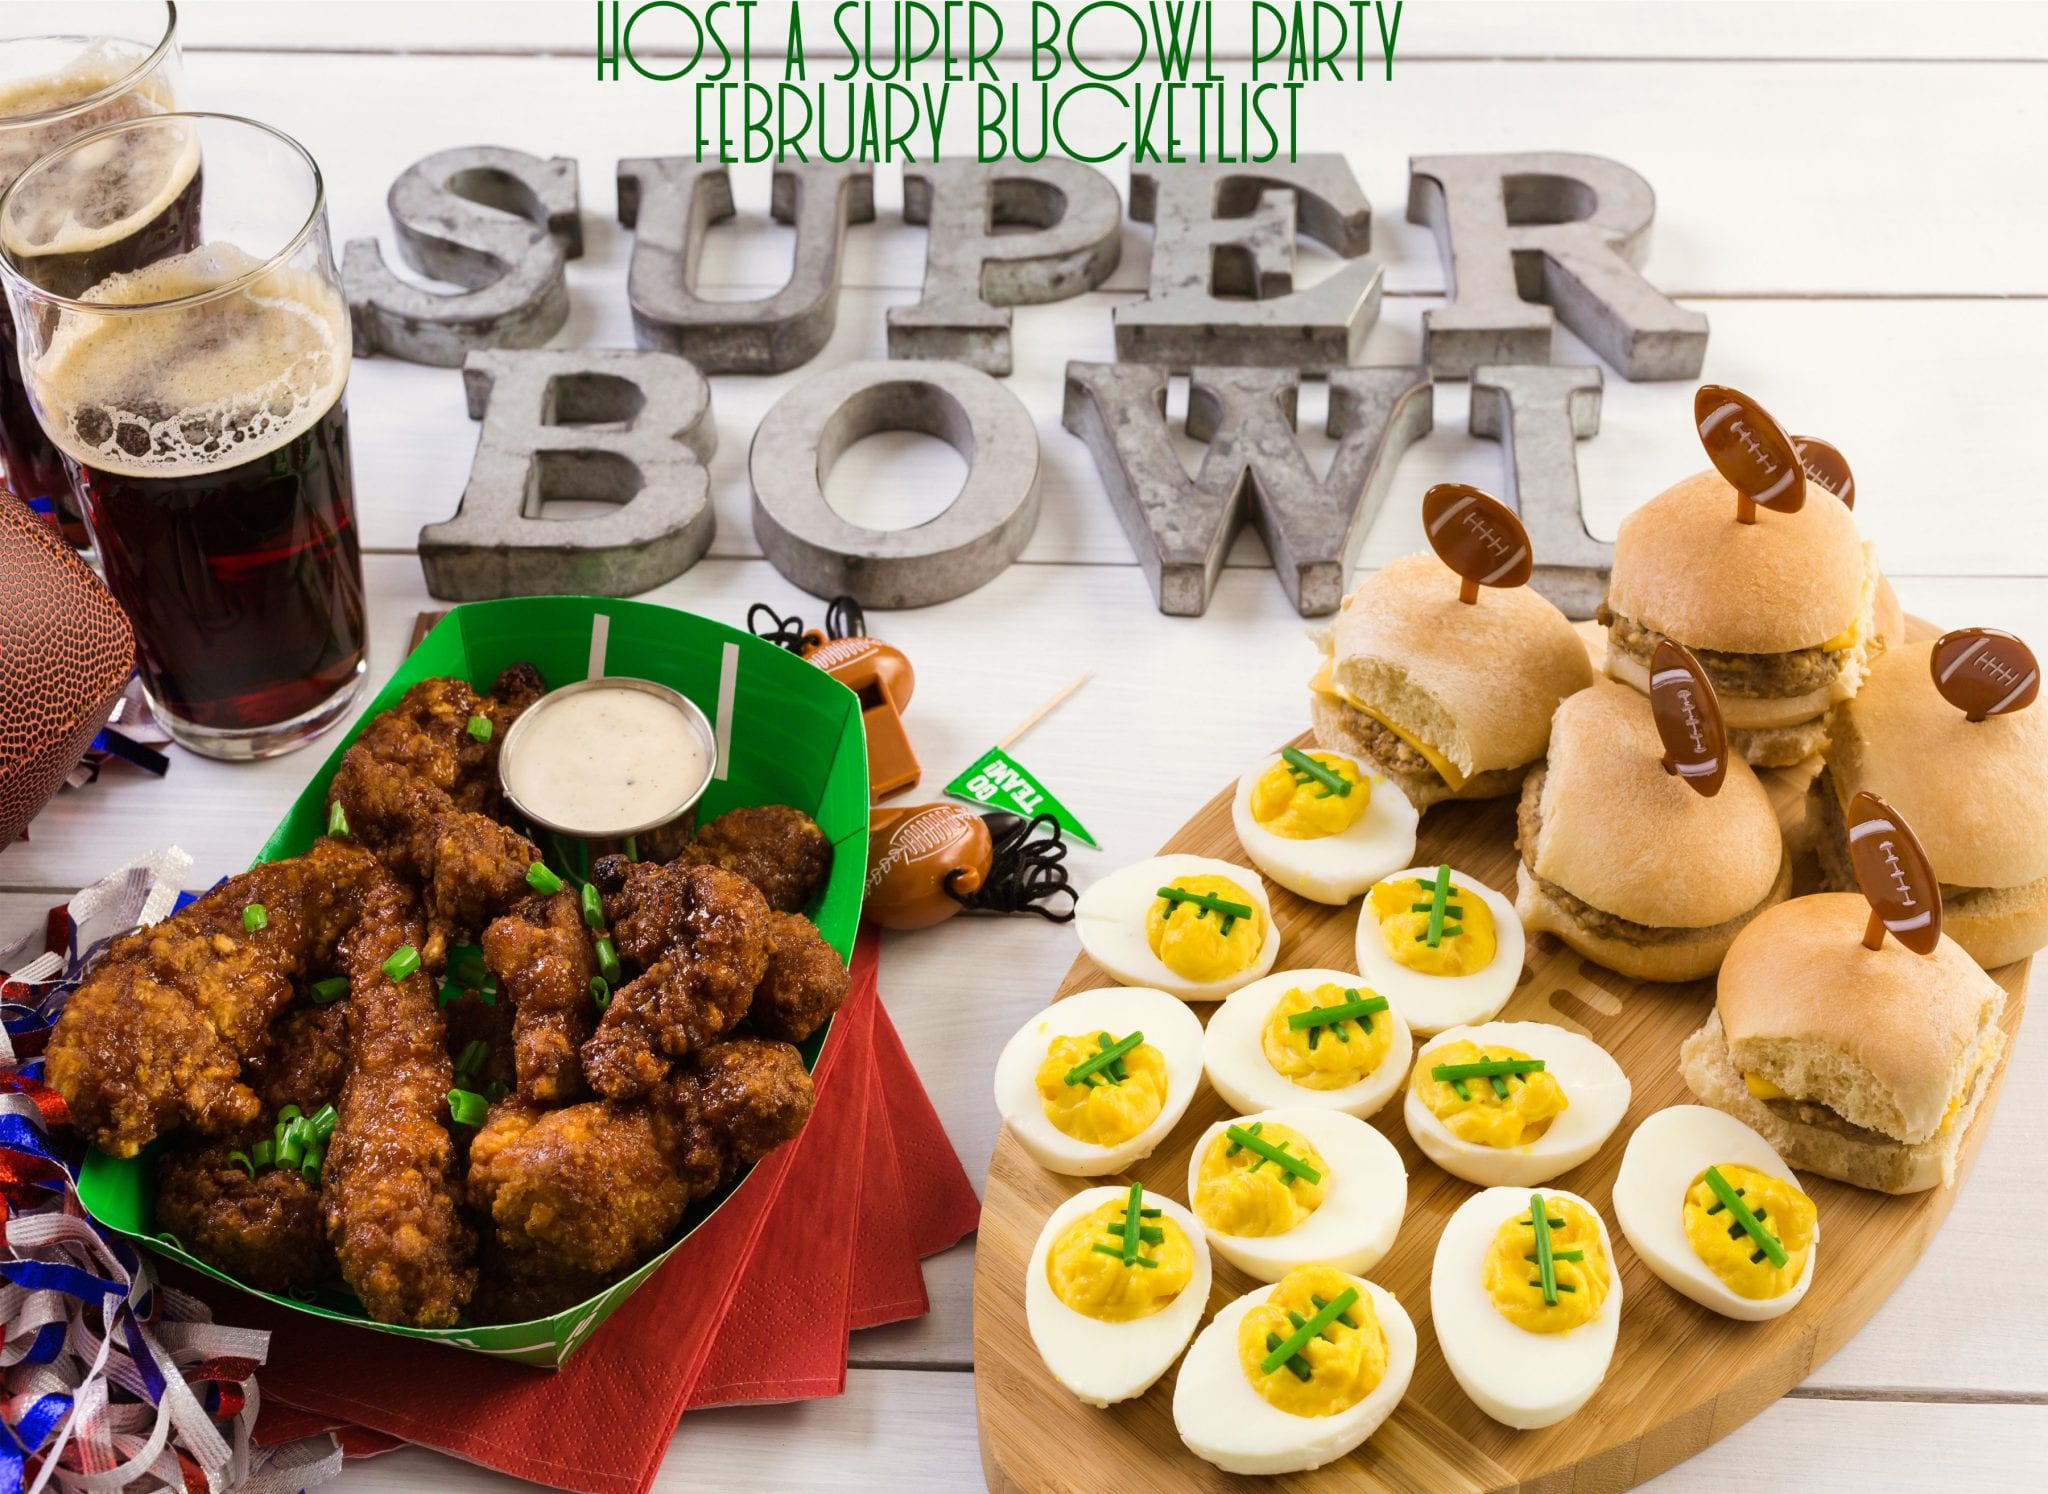 Super Bowl Party | February Bucket List | Good Life of a Housewife